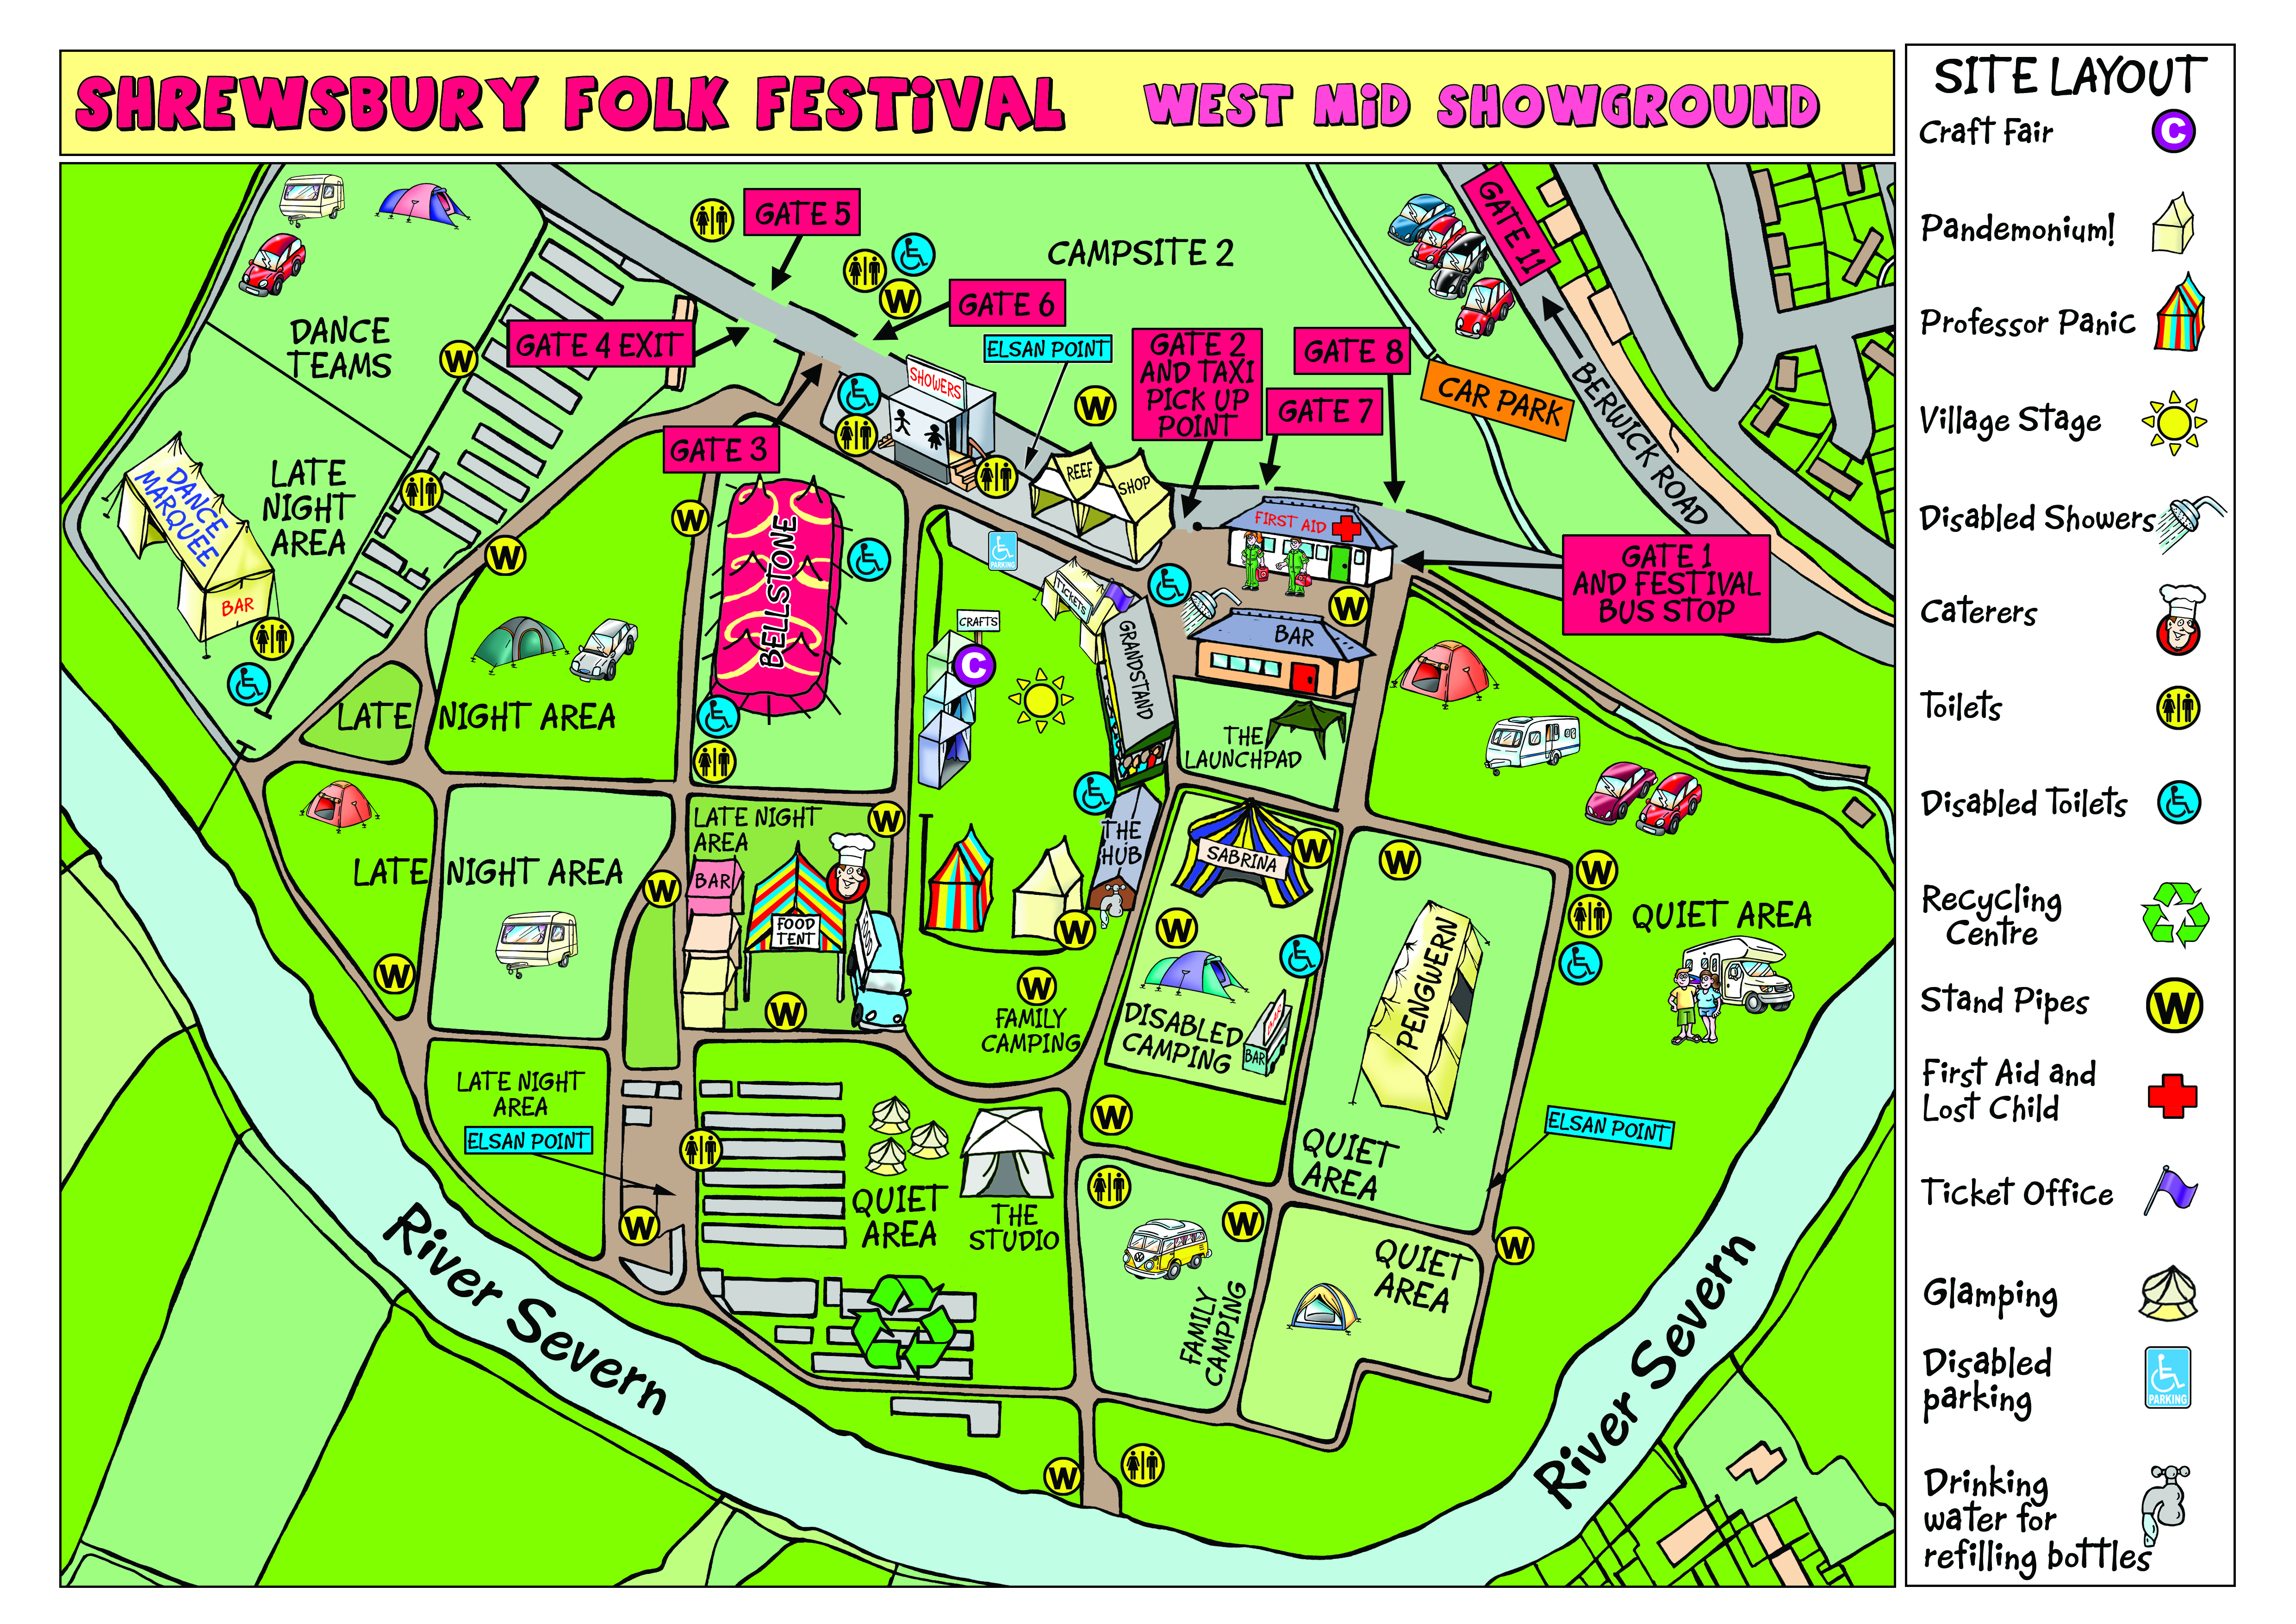 Festival Maps – Shrewsbury Folk Festival on vacation travel map, parks map, fishing map, hiking map, summer vacation map, travling map, the mountains map, fatality map, dorm room map, campground map, dangerous animals map, restroom map, treasure map, frontier town ocean city md map, international food map, forest areas map, underground lakes map, tarp map, places to go map,